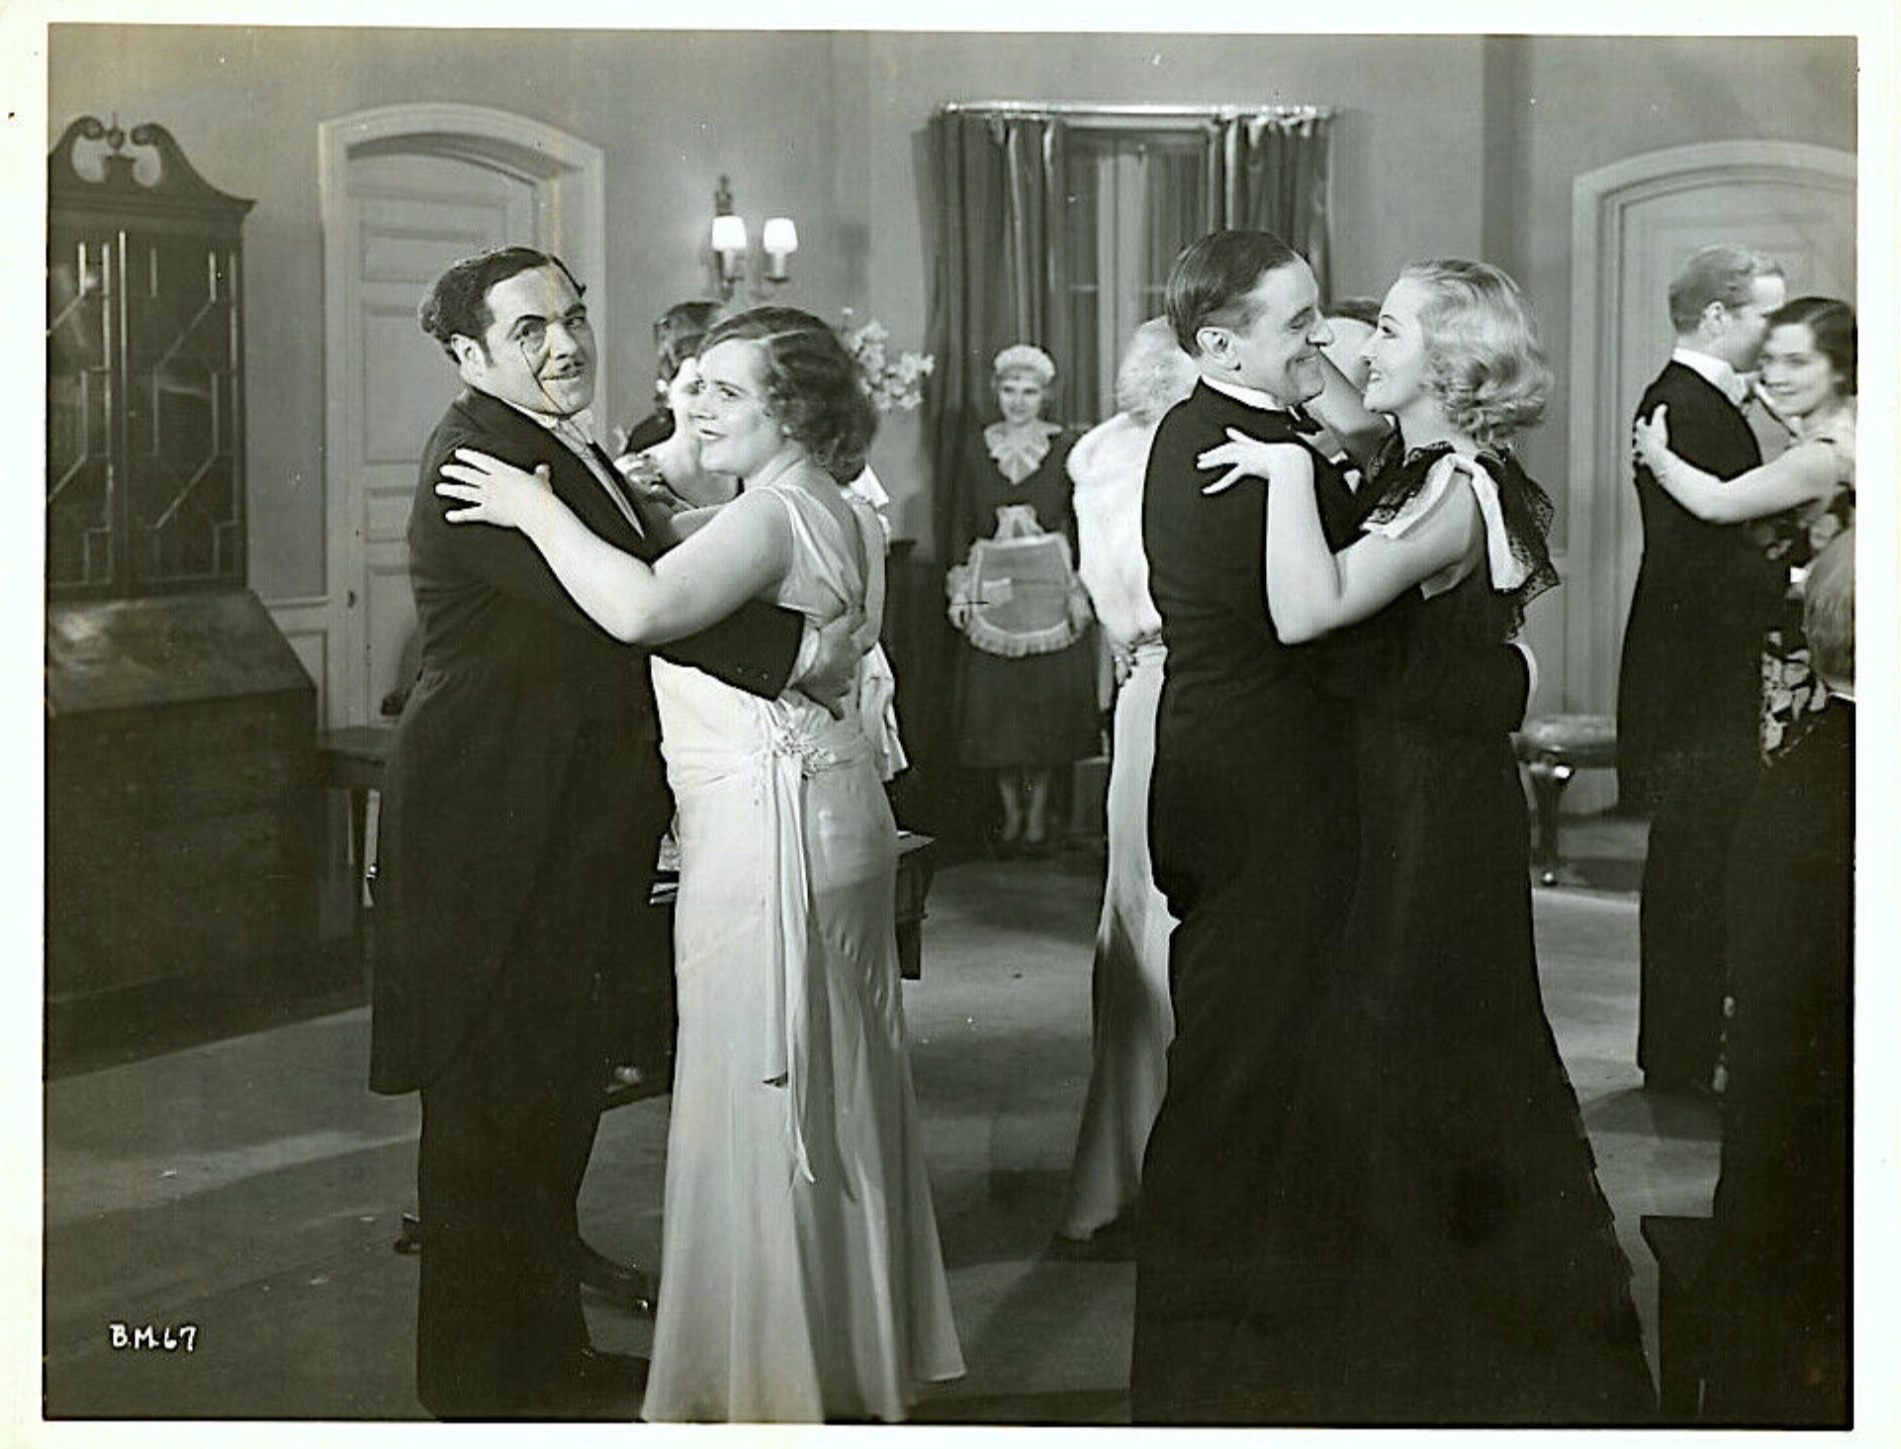 Lora Baxter, Jules Epailly, and Taylor Holmes in Before Morning (1933)